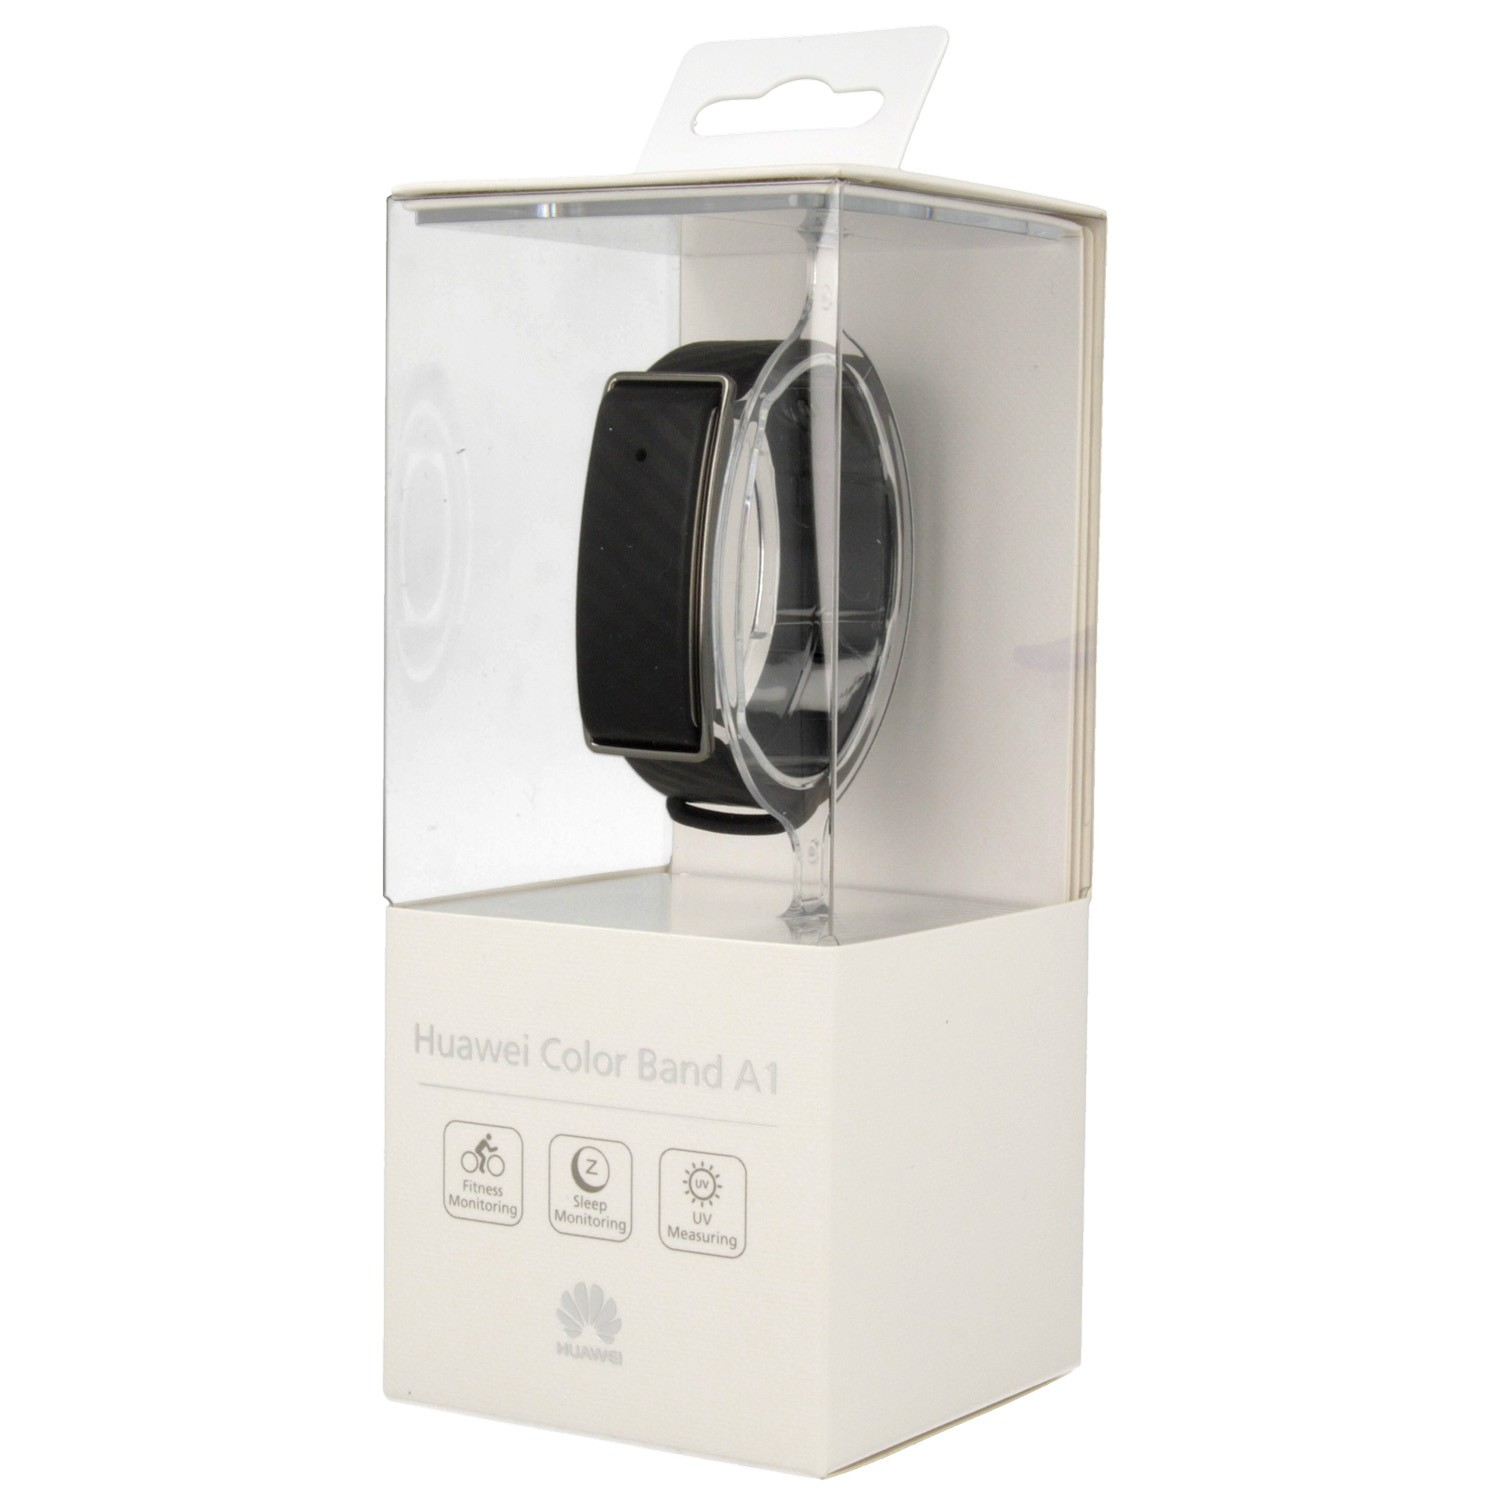 Huawei Smartwatch Honor Color Band A1 (Model AW600) QMR Shop